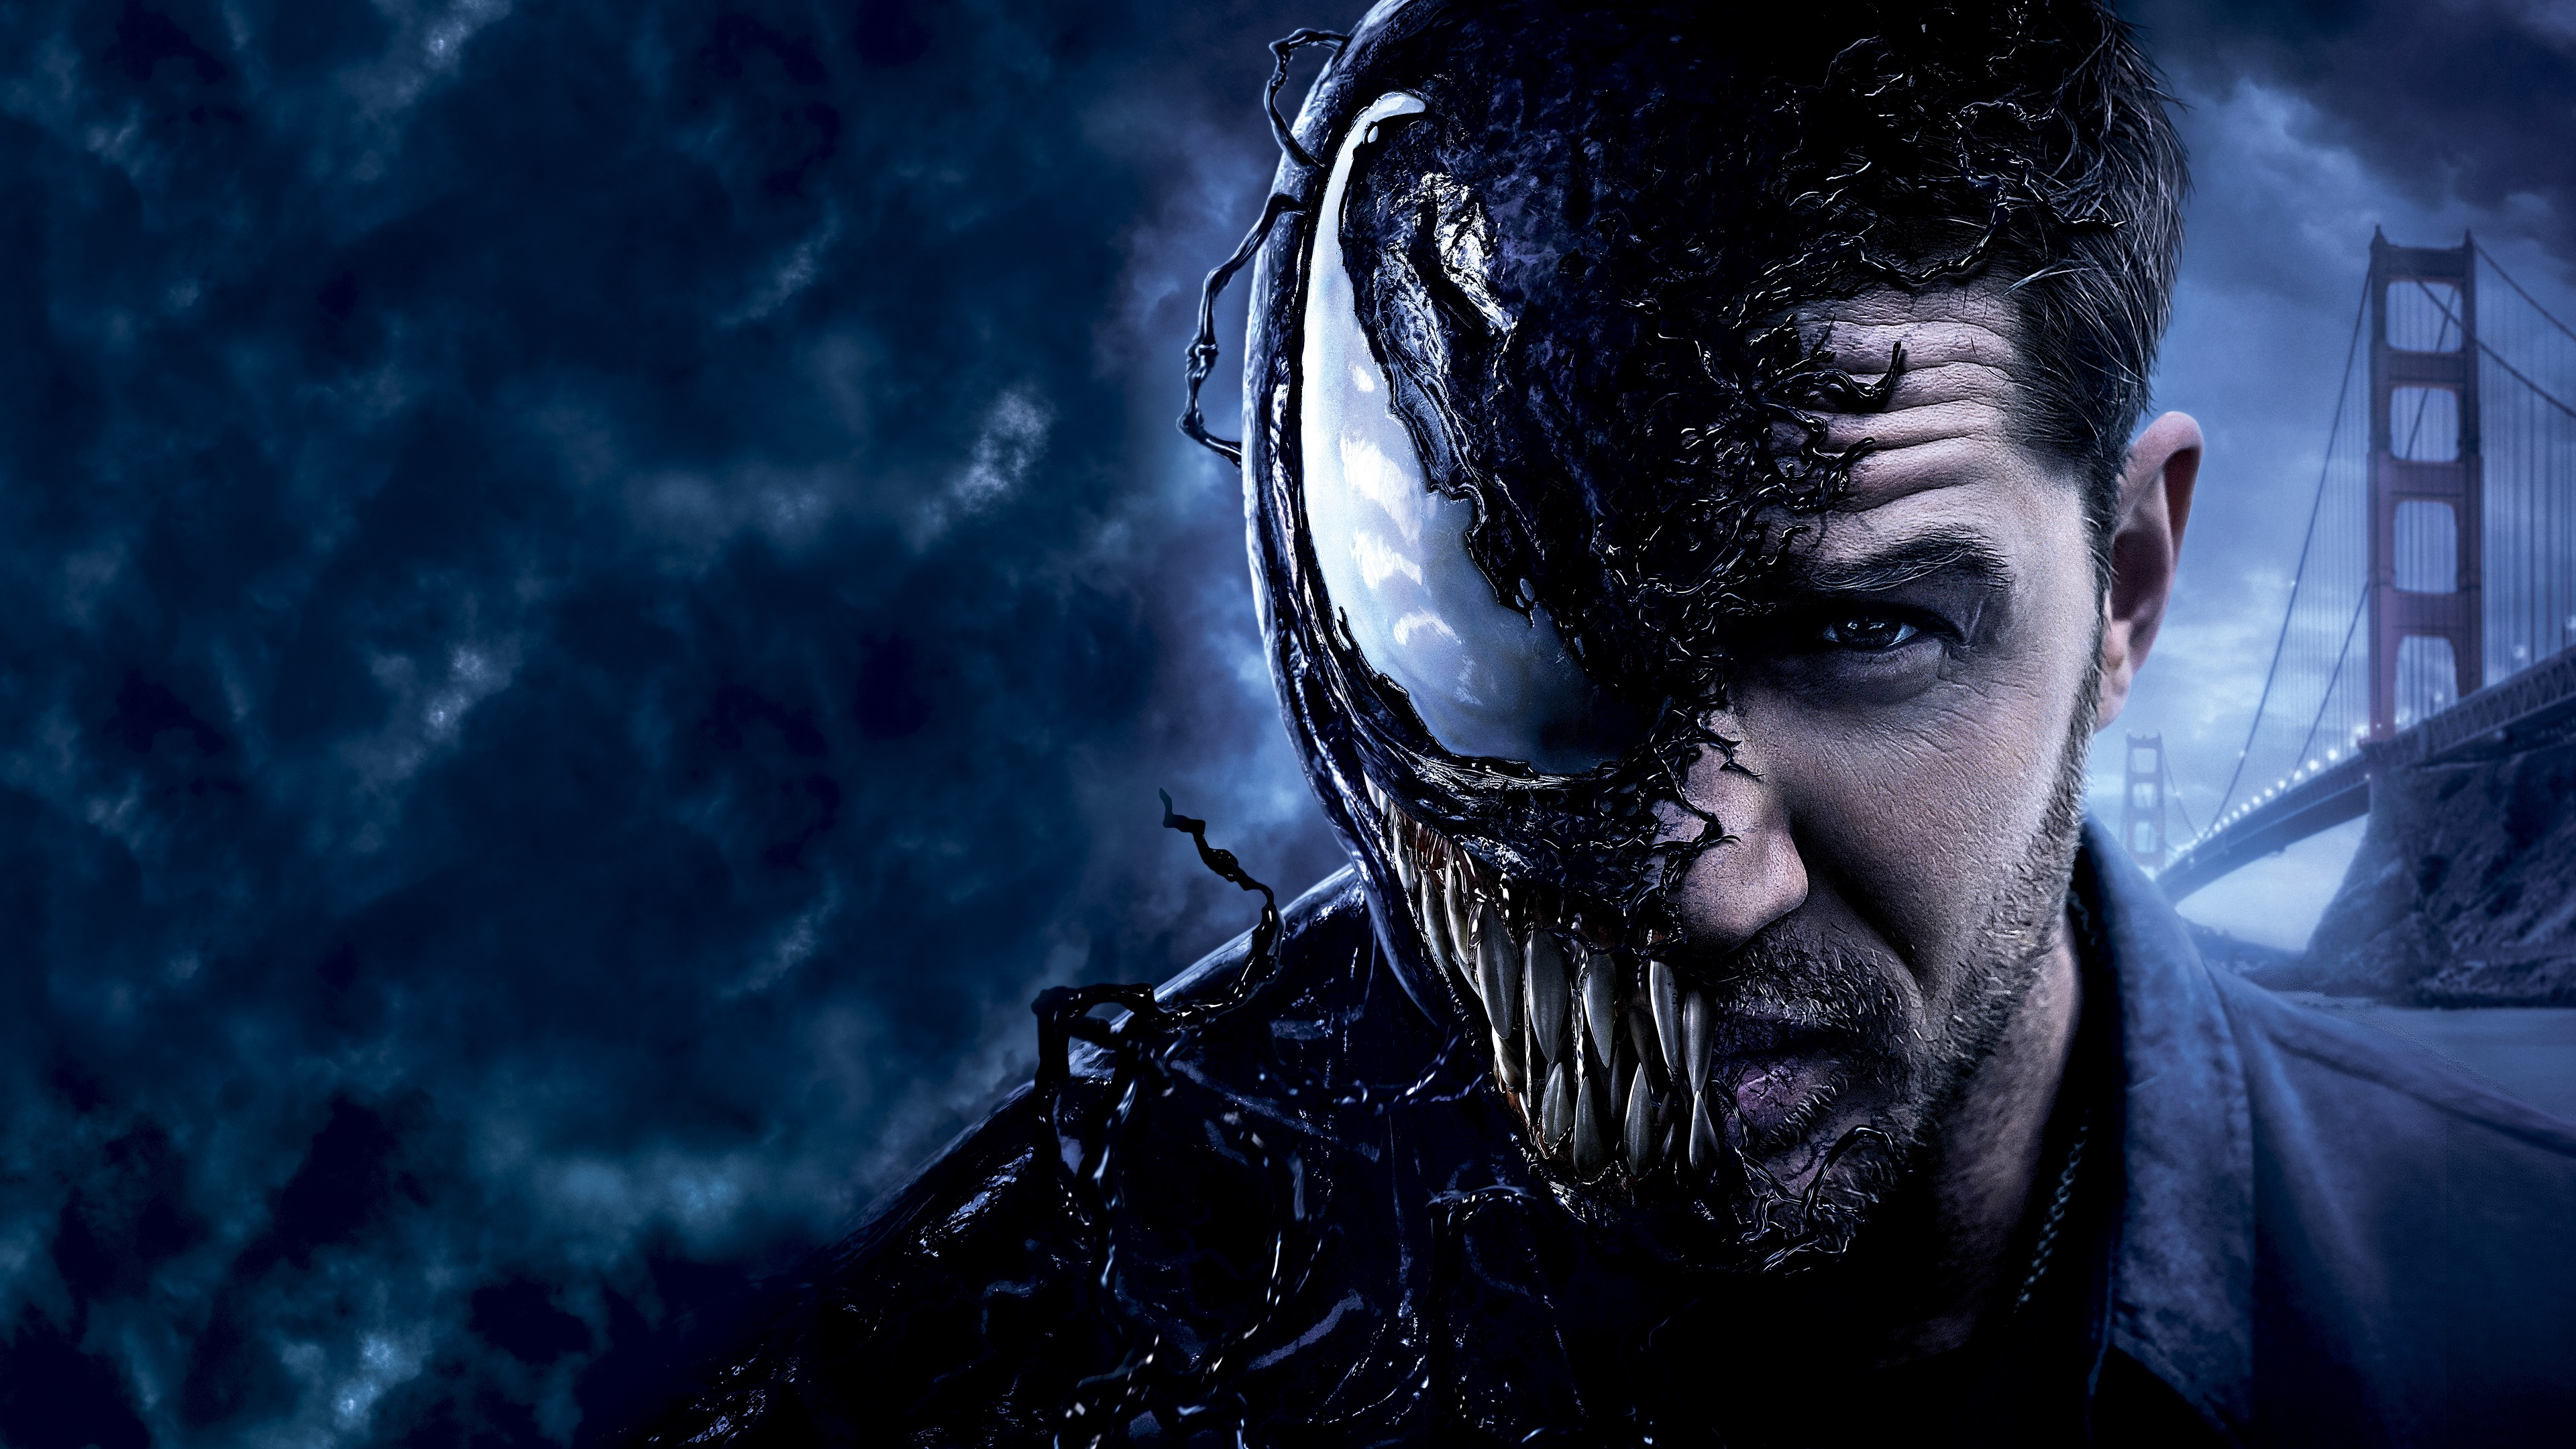 3840x2160 Download 3840x2160 Venom, Tom Hardy Wallpapers for UHD TV ...